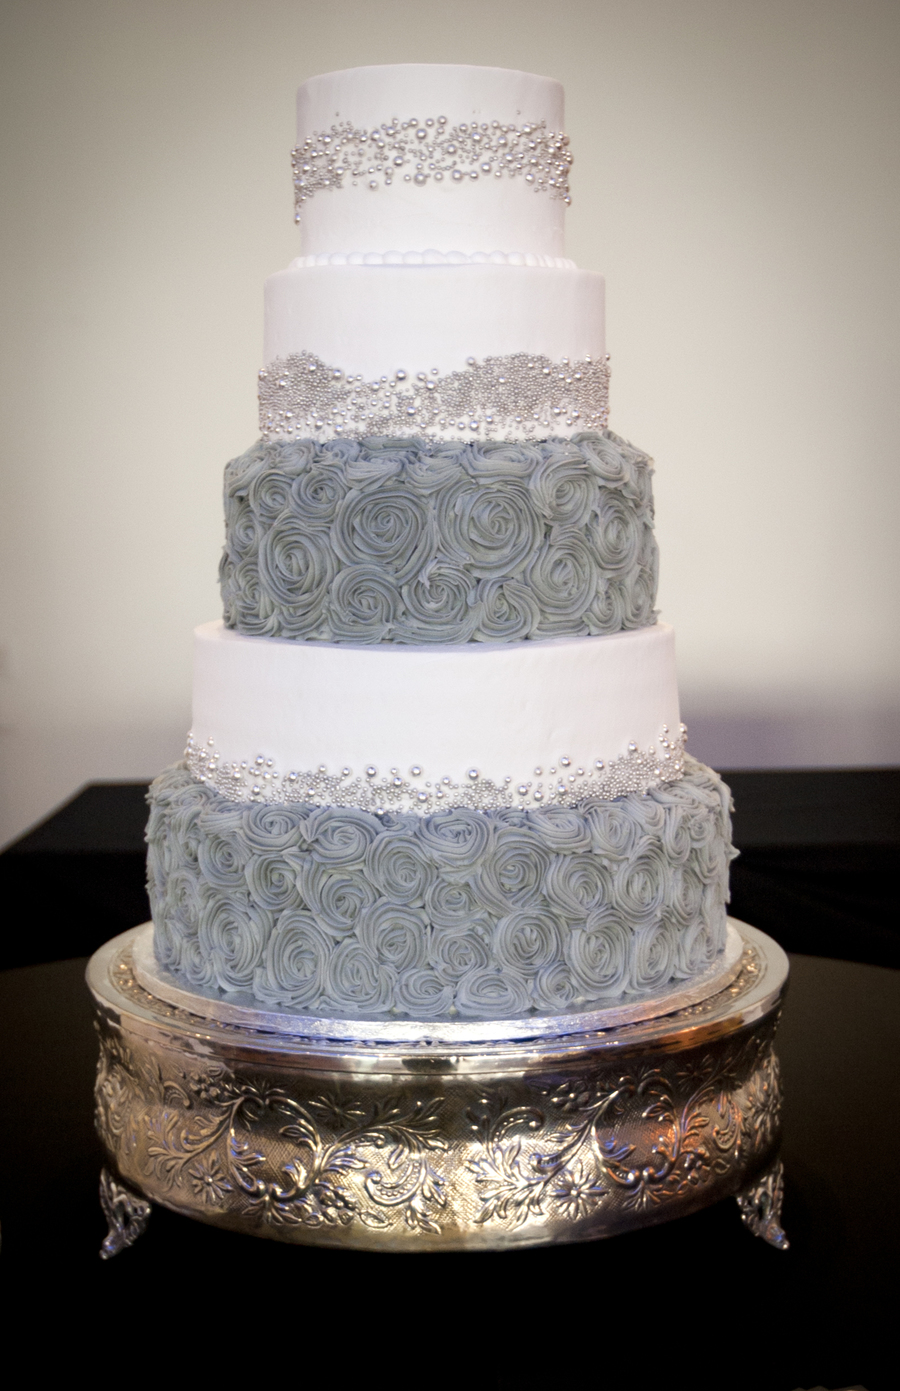 3 Tier Wedding Cake Covered In Fondant With Gumpaste Lace And - 3 Tier Wedding Cakes